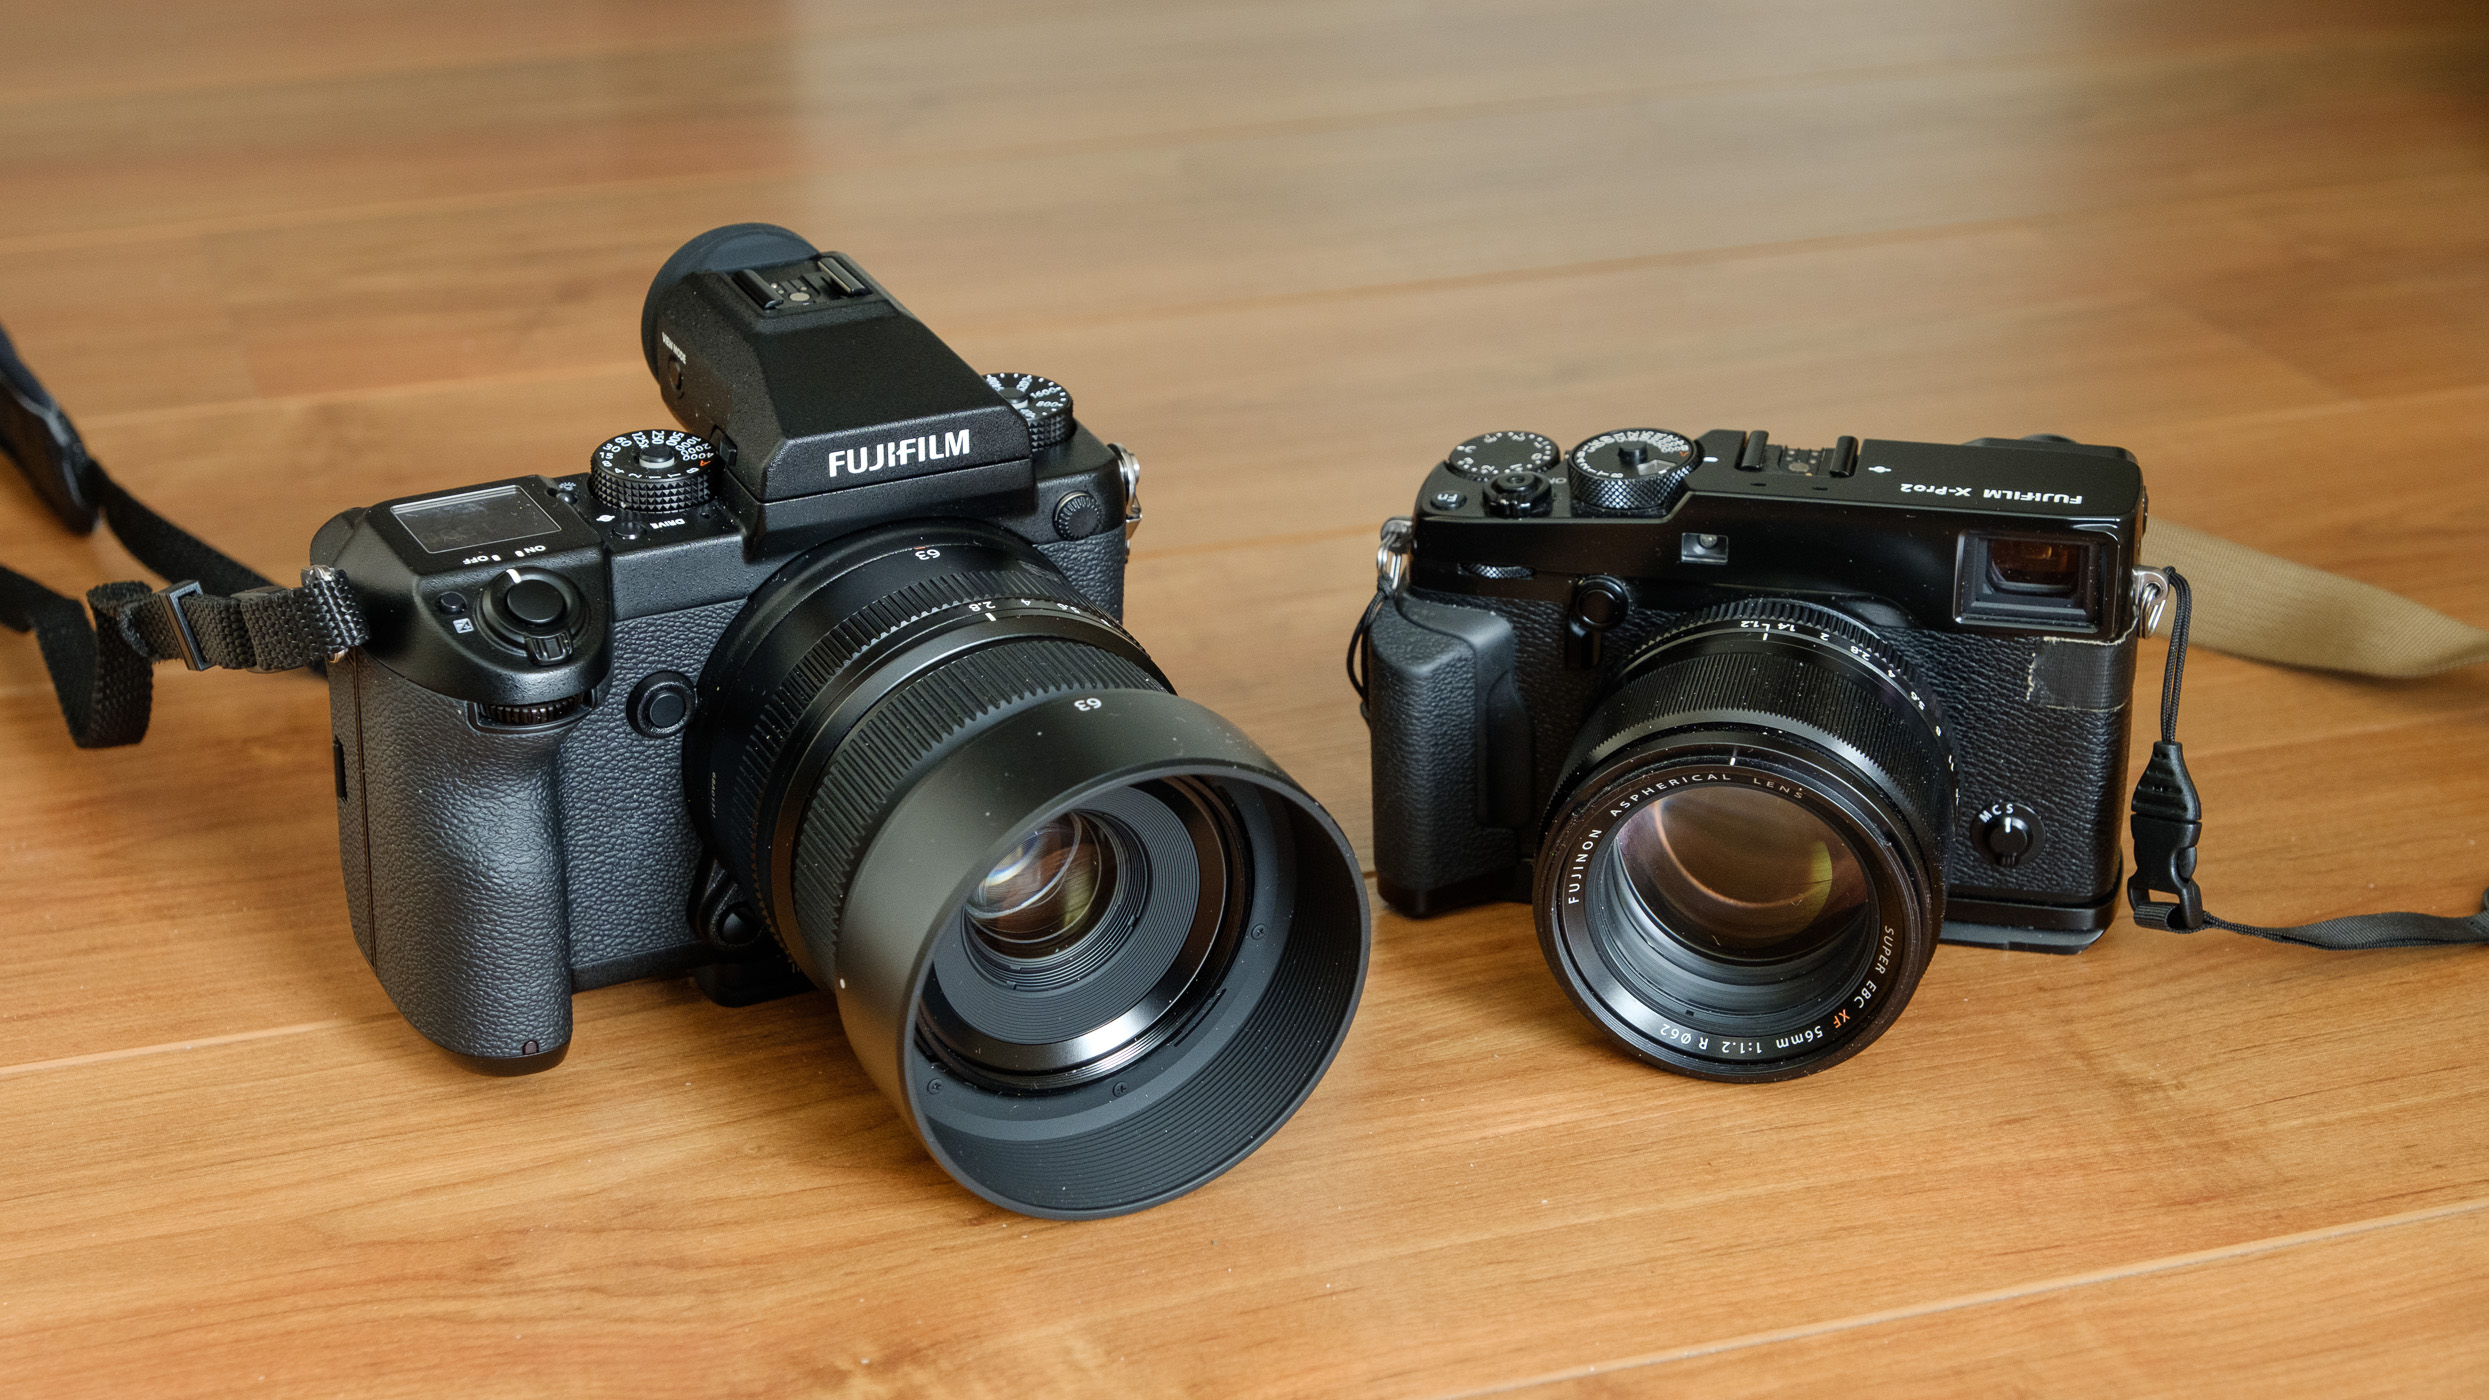 My second GFX50S with my second GF63mm together with my good old X-Pro2